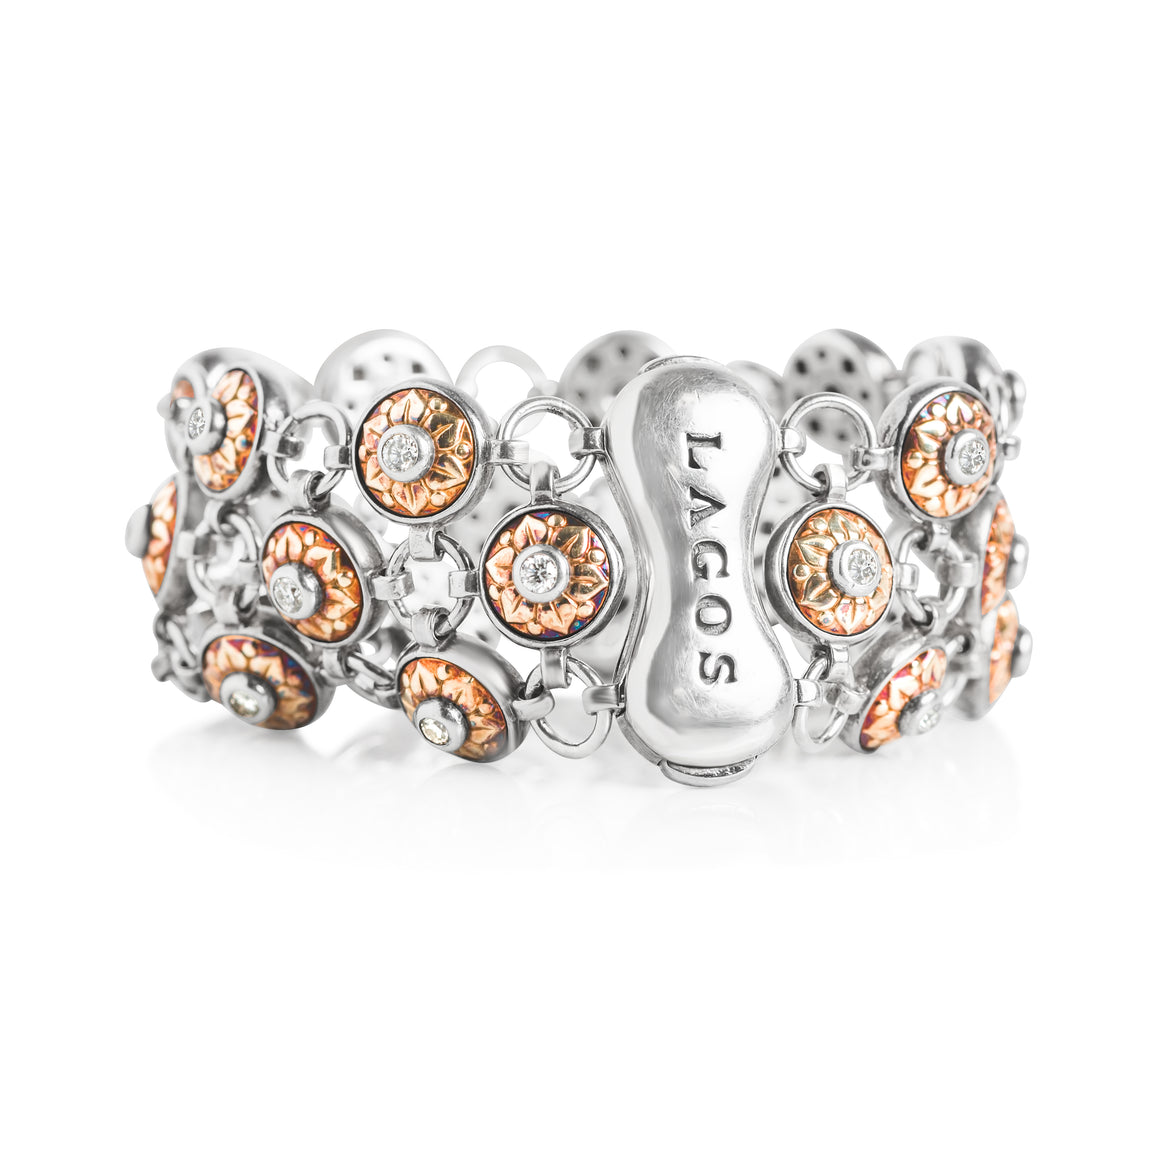 LAGOS ESTATE BRACELET WITH YELOW GOLD, STERLING SILVER AND ROUND DIAMONDS WITH FLOWER PATTERN